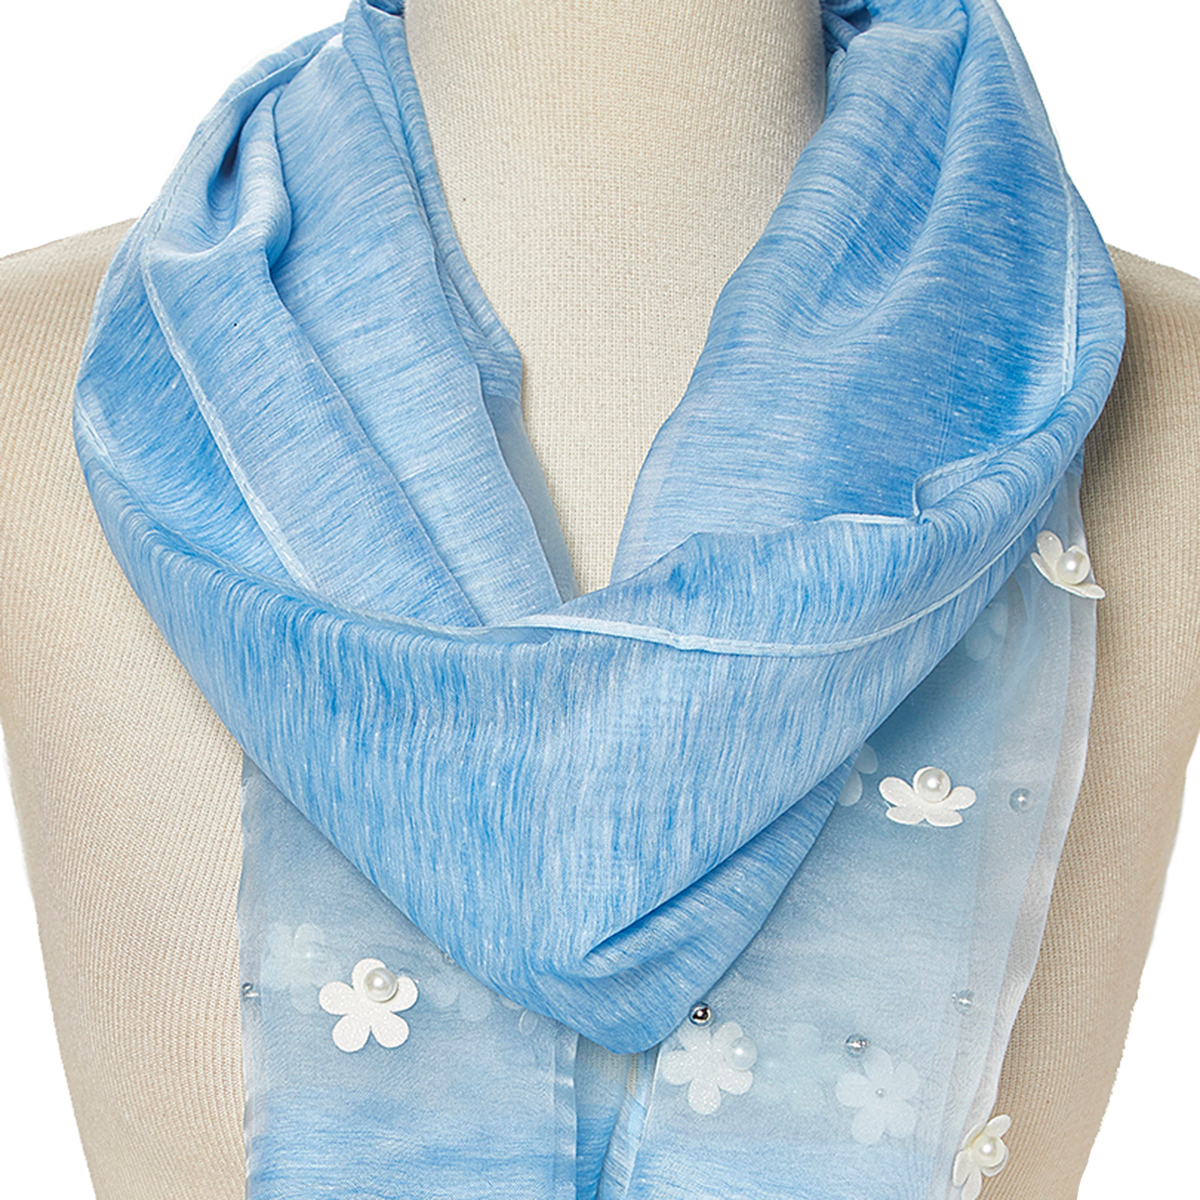 design senza tempo store caratteristiche eccezionali Blue Scarfs for Women Winter Fashion Lightweight Scarves Evening Prom Scarf  Flower Casual Long Neck Wrap Gift Accessories Online